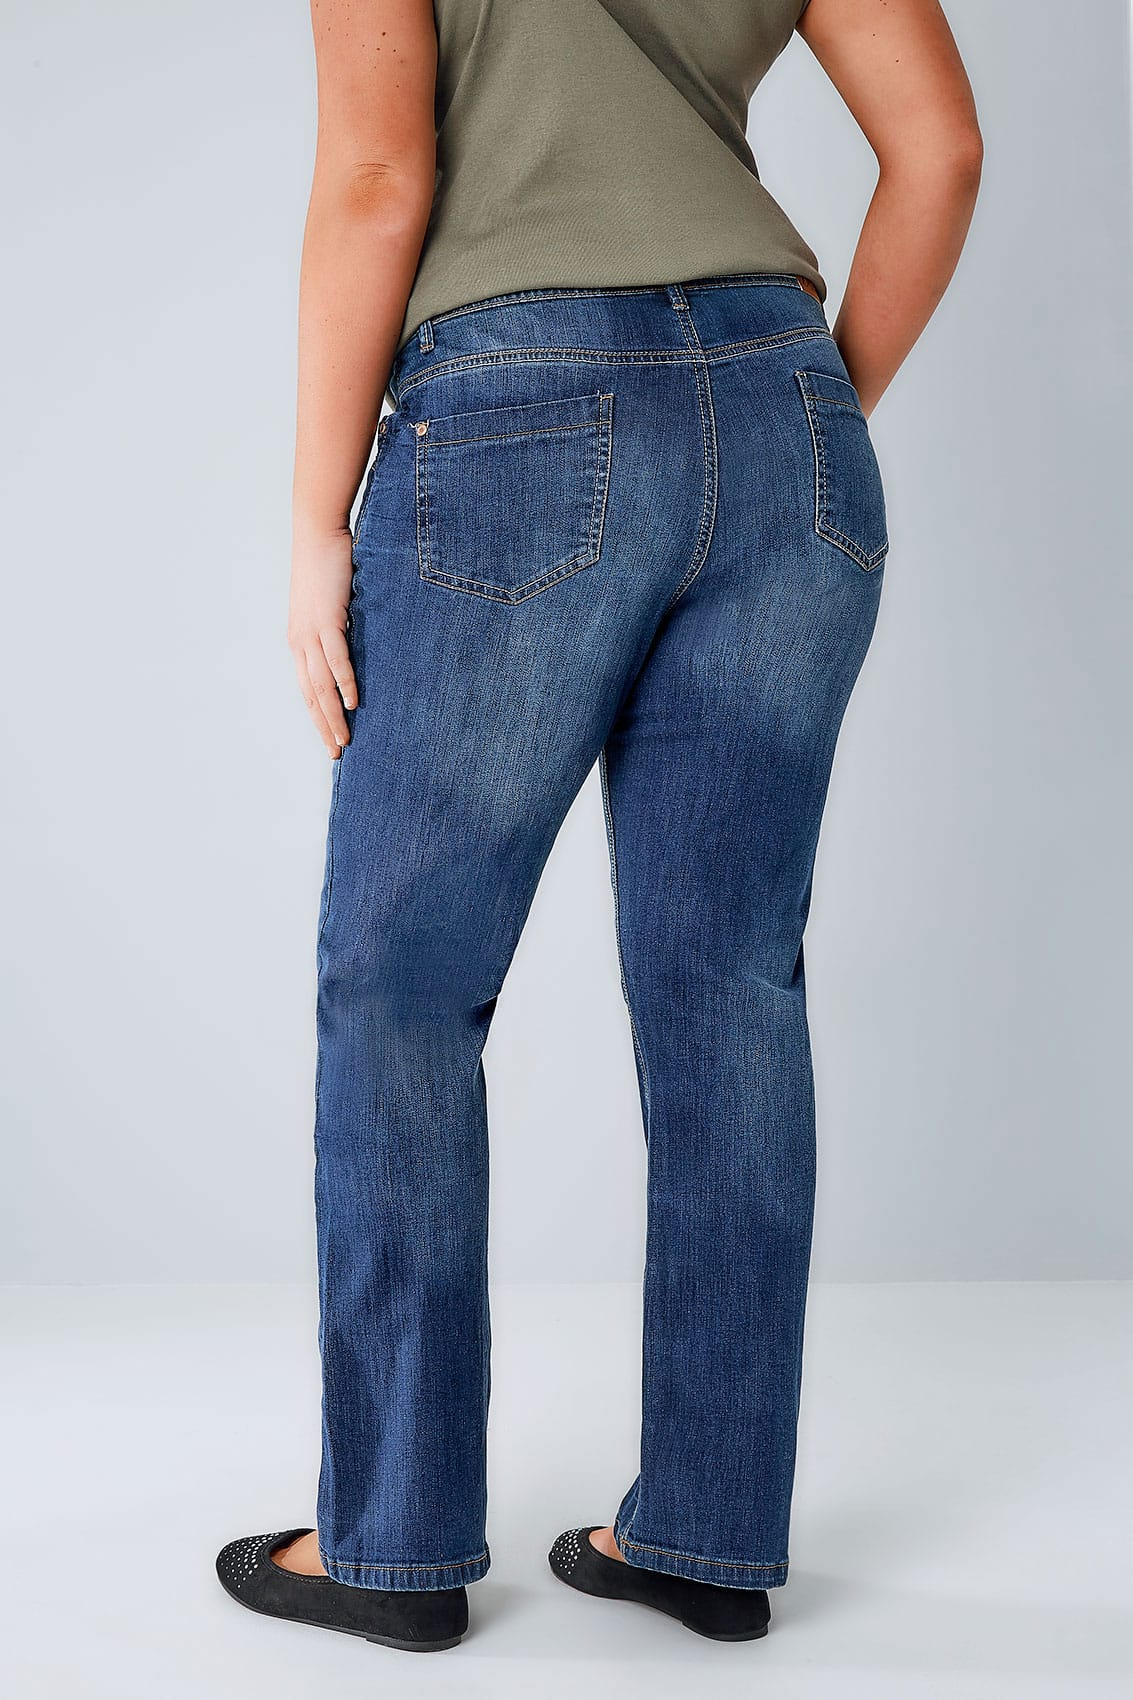 Shop all women's straight leg jeans for women! Your favorite new pair of jeans is at Express!